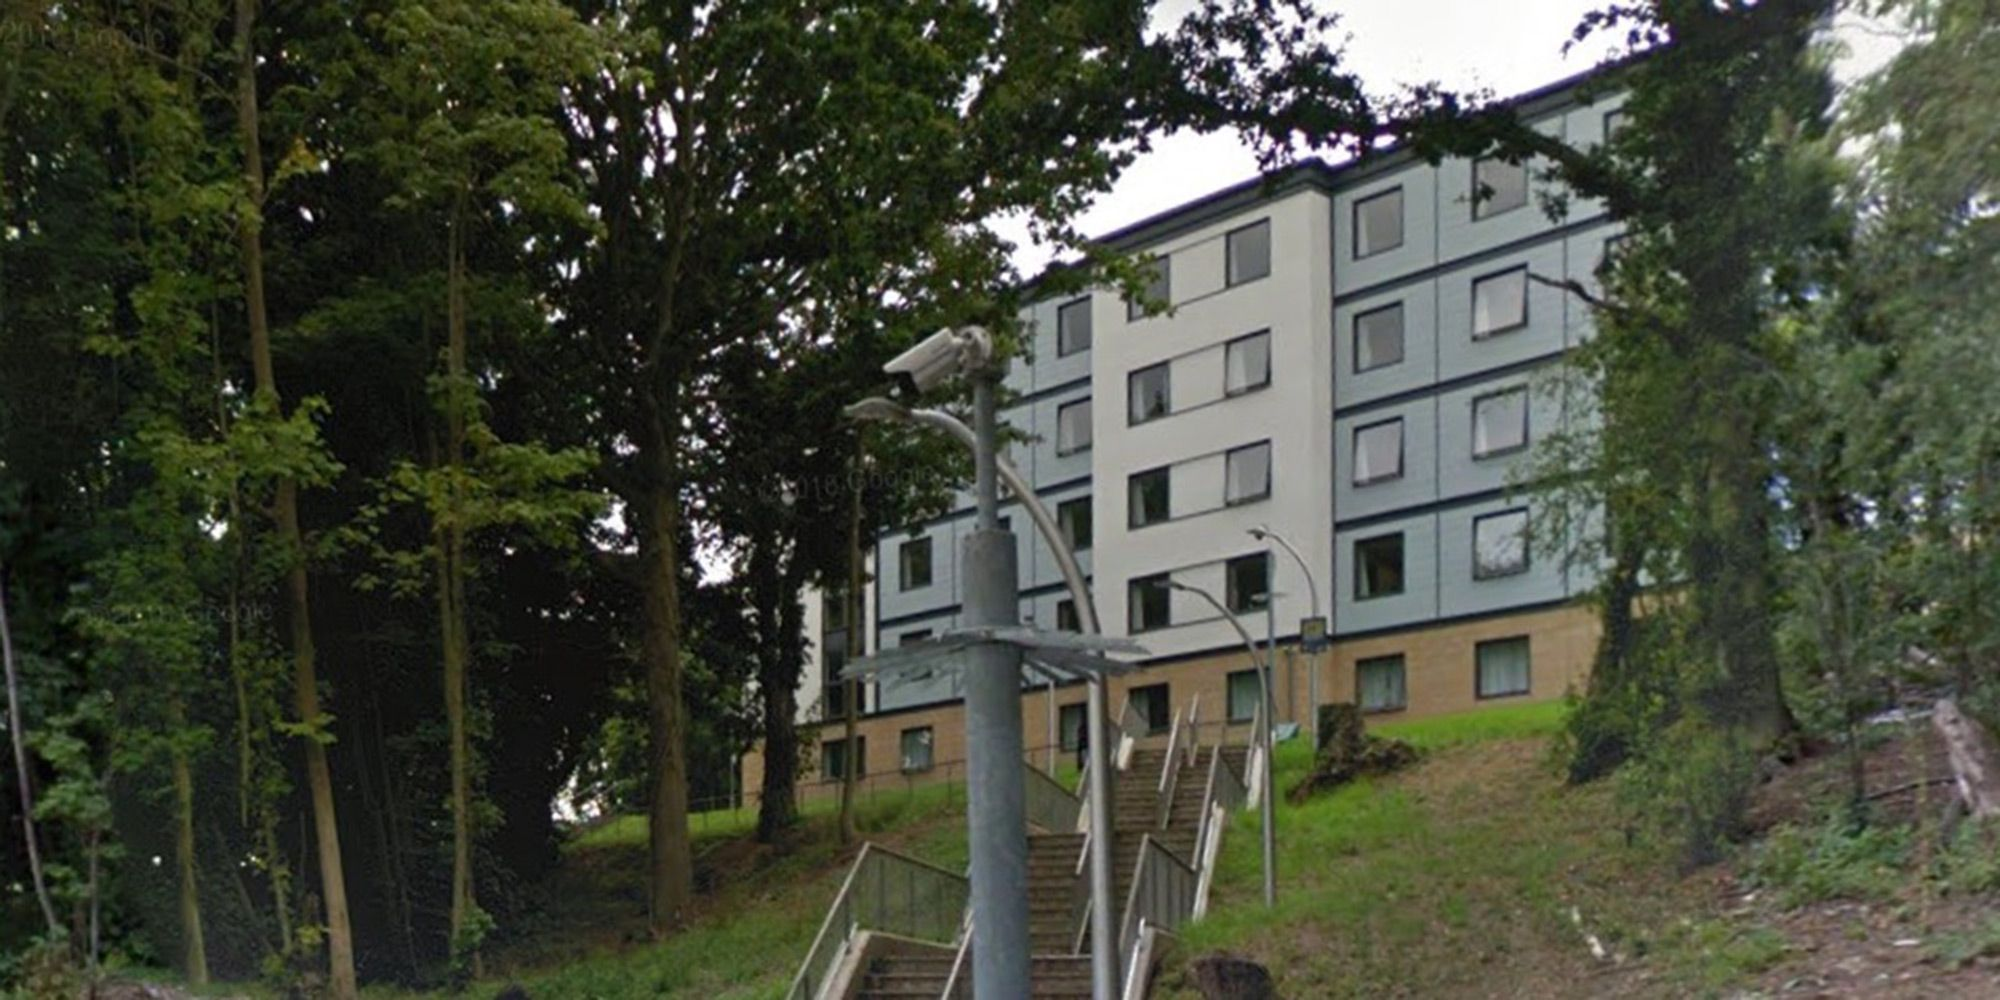 An 18-year-old girl has been found dead in her student halls after her first night at university